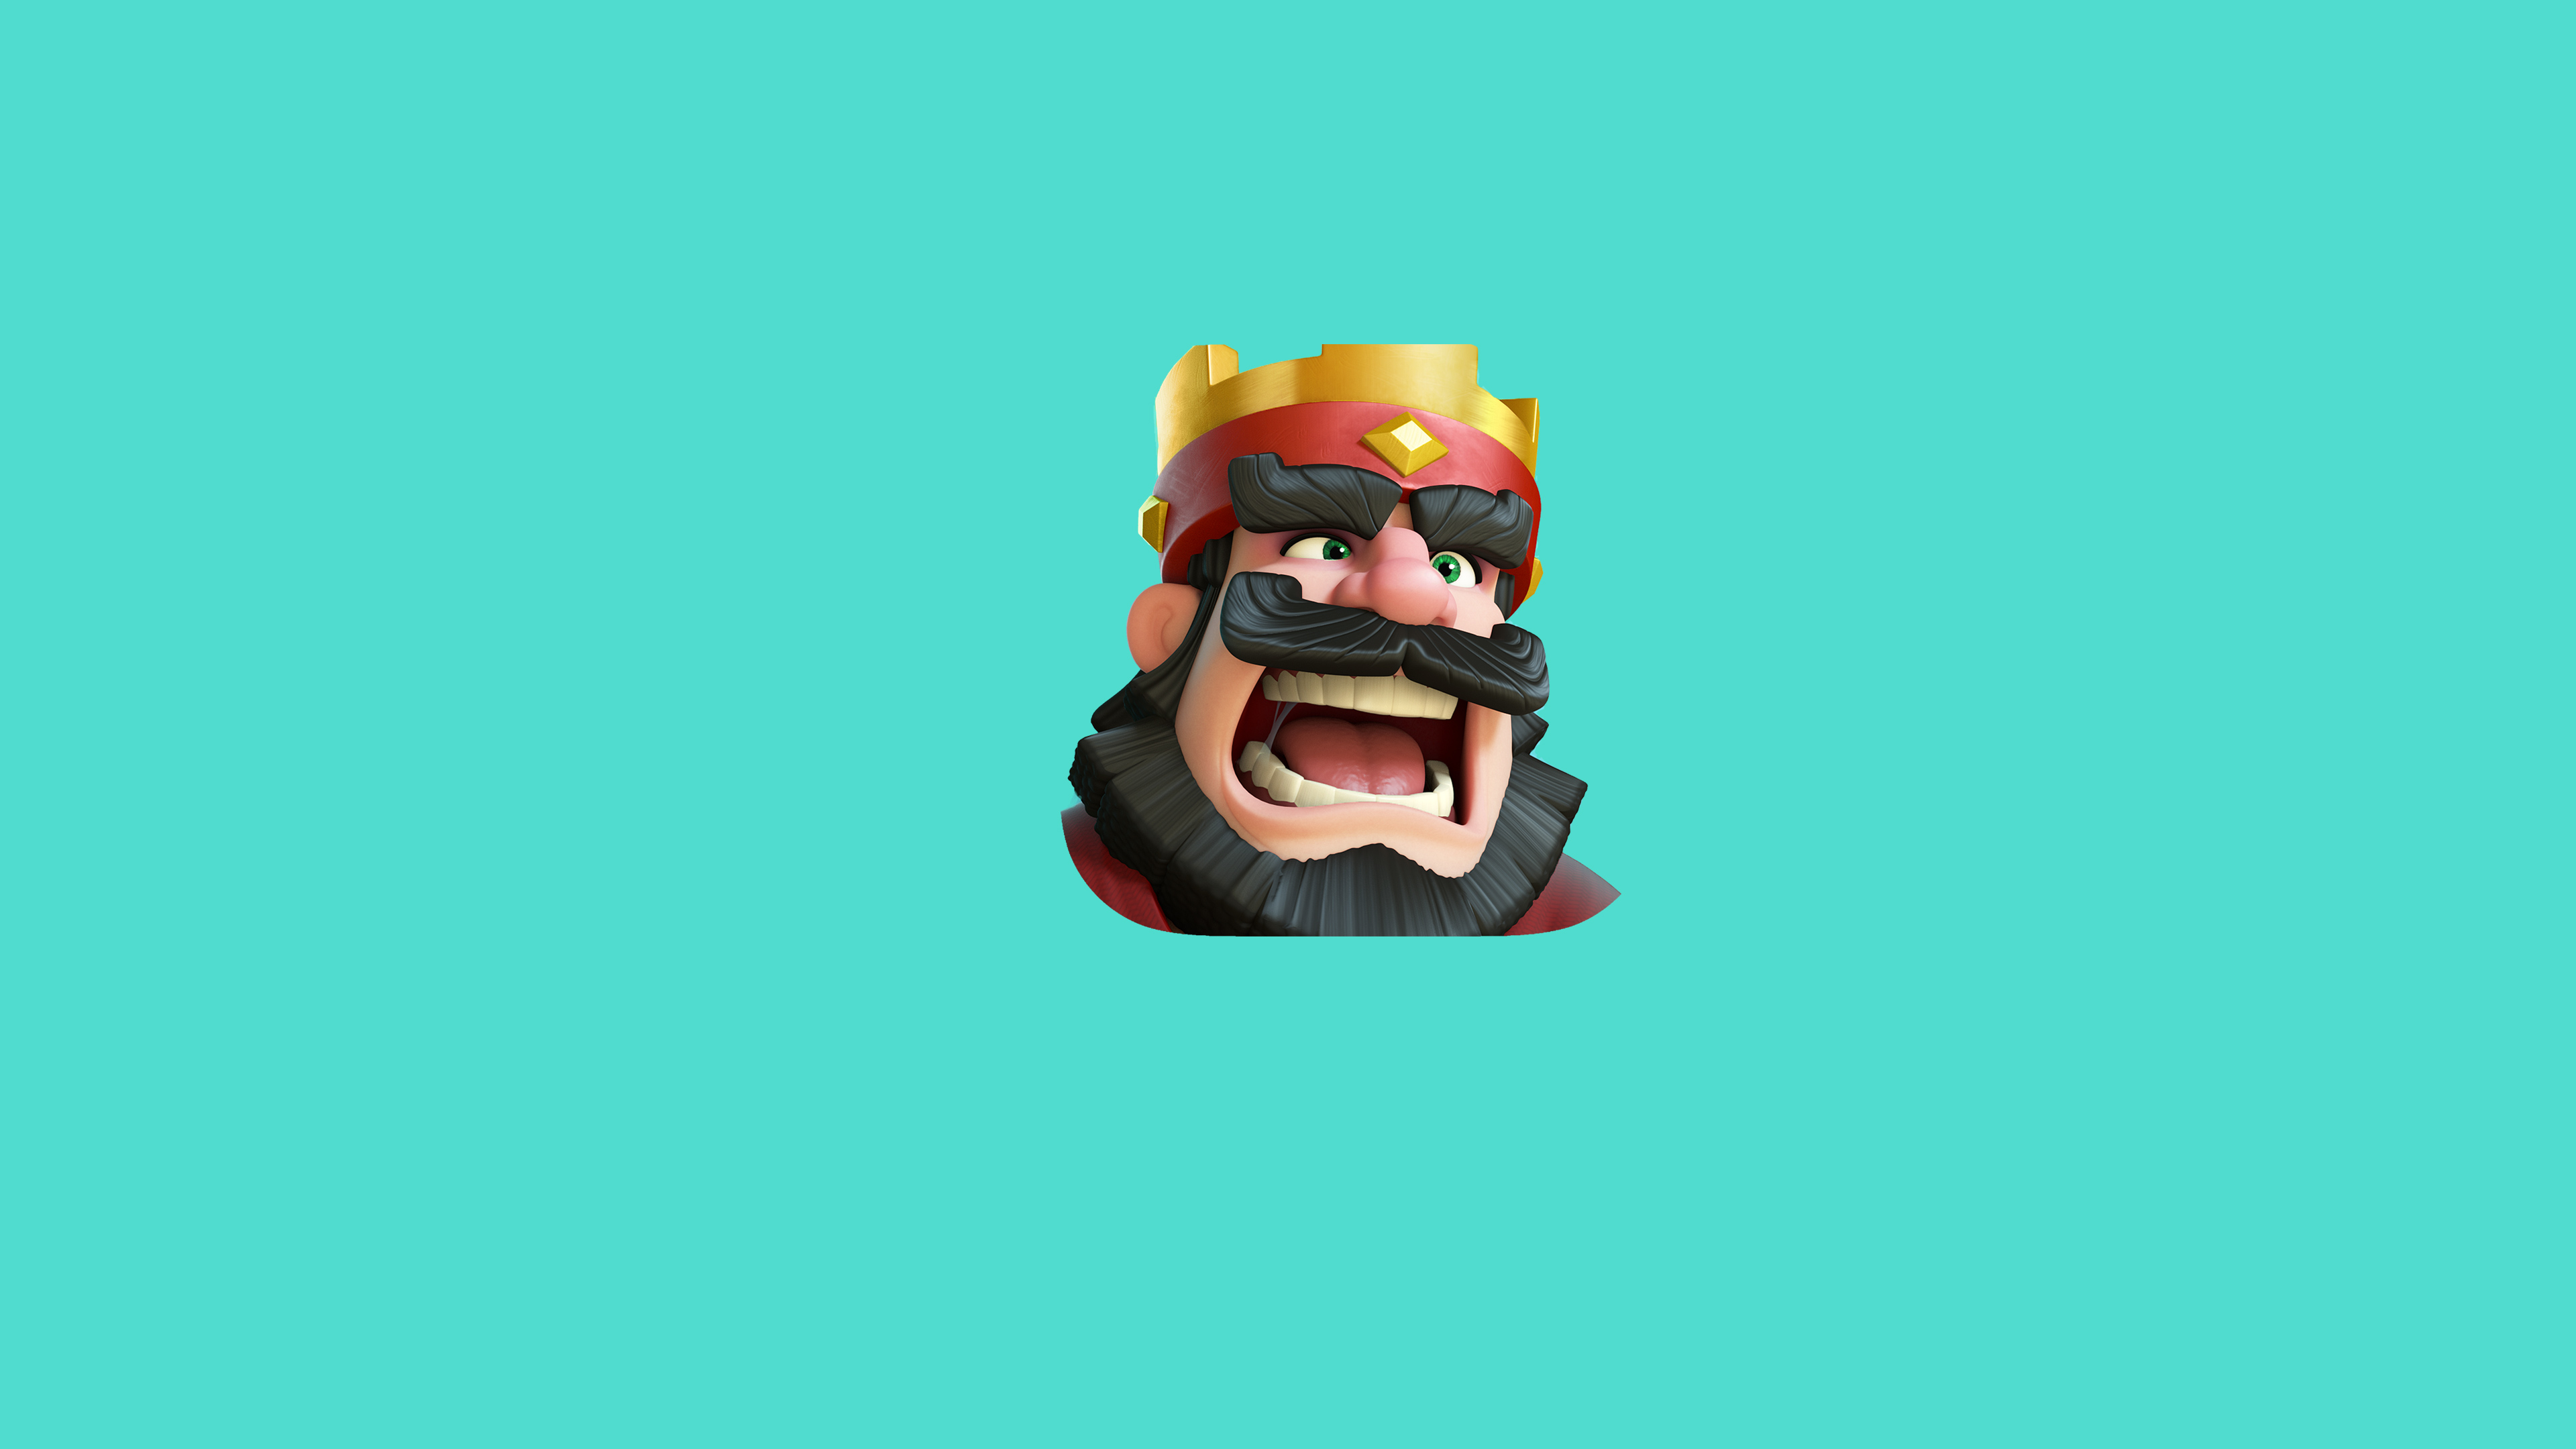 2048x1152 clash royale king 2048x1152 resolution hd 4k wallpapers images backgrounds photos. Black Bedroom Furniture Sets. Home Design Ideas